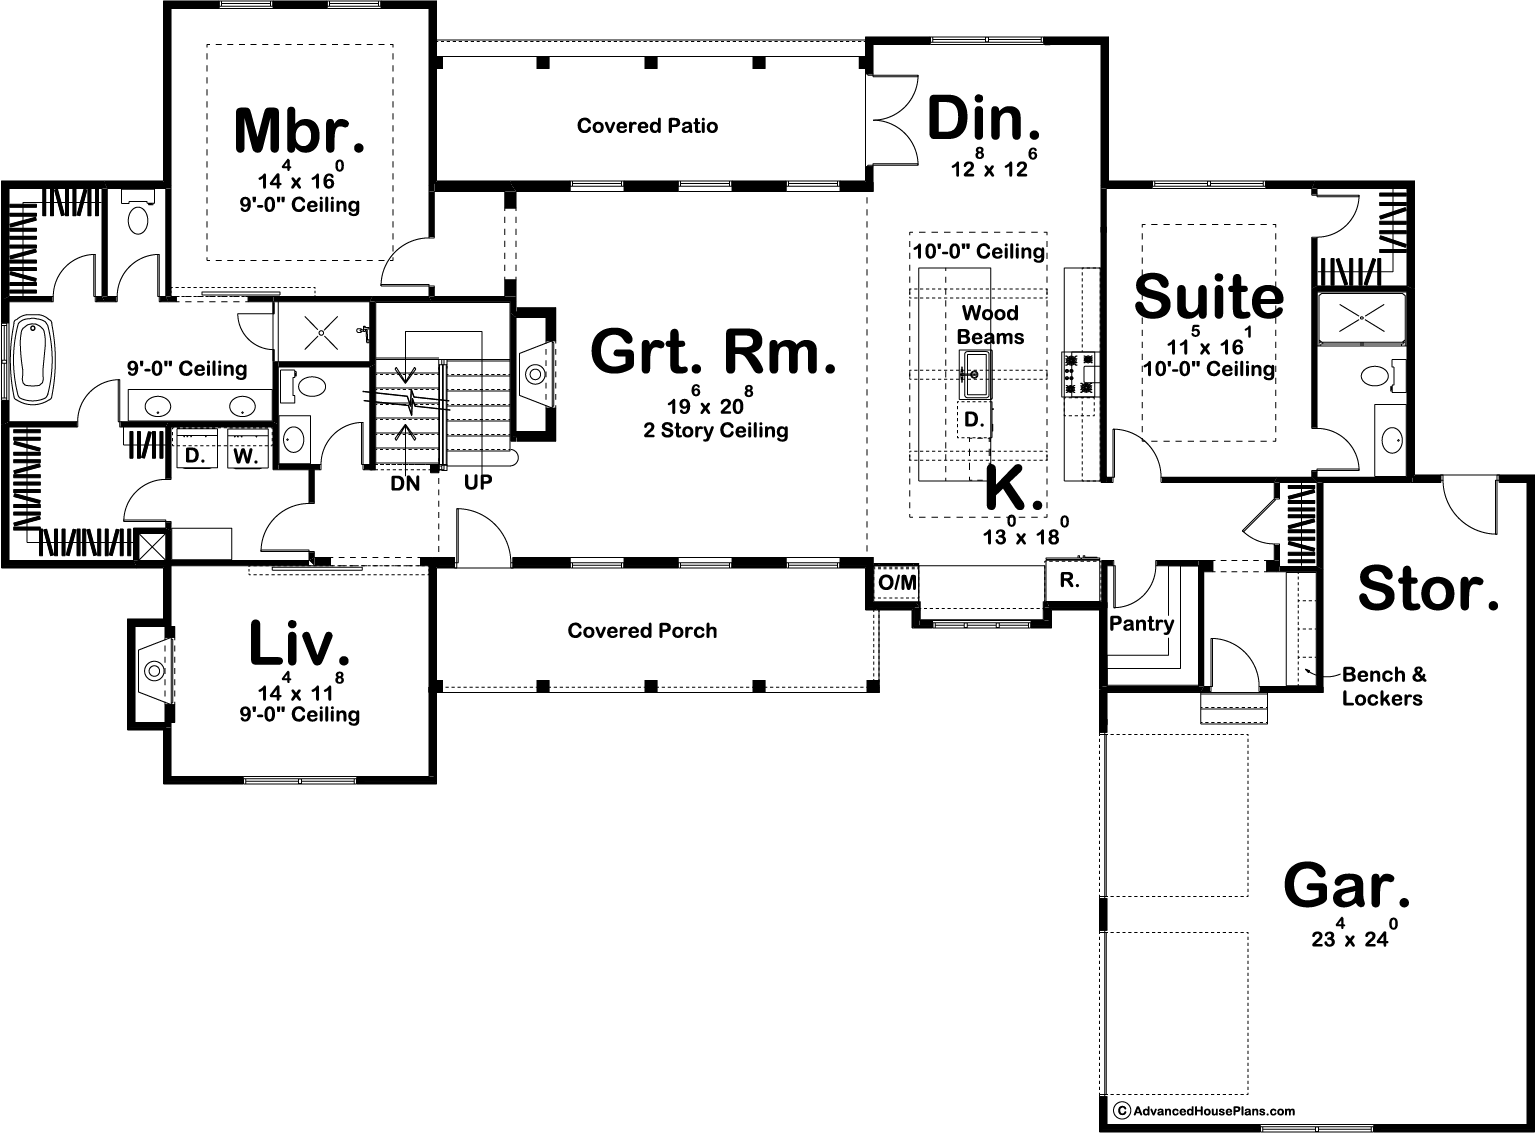 Two Master Bedrooms The Floor Plan Feature That Promises A Good Nights Sleep